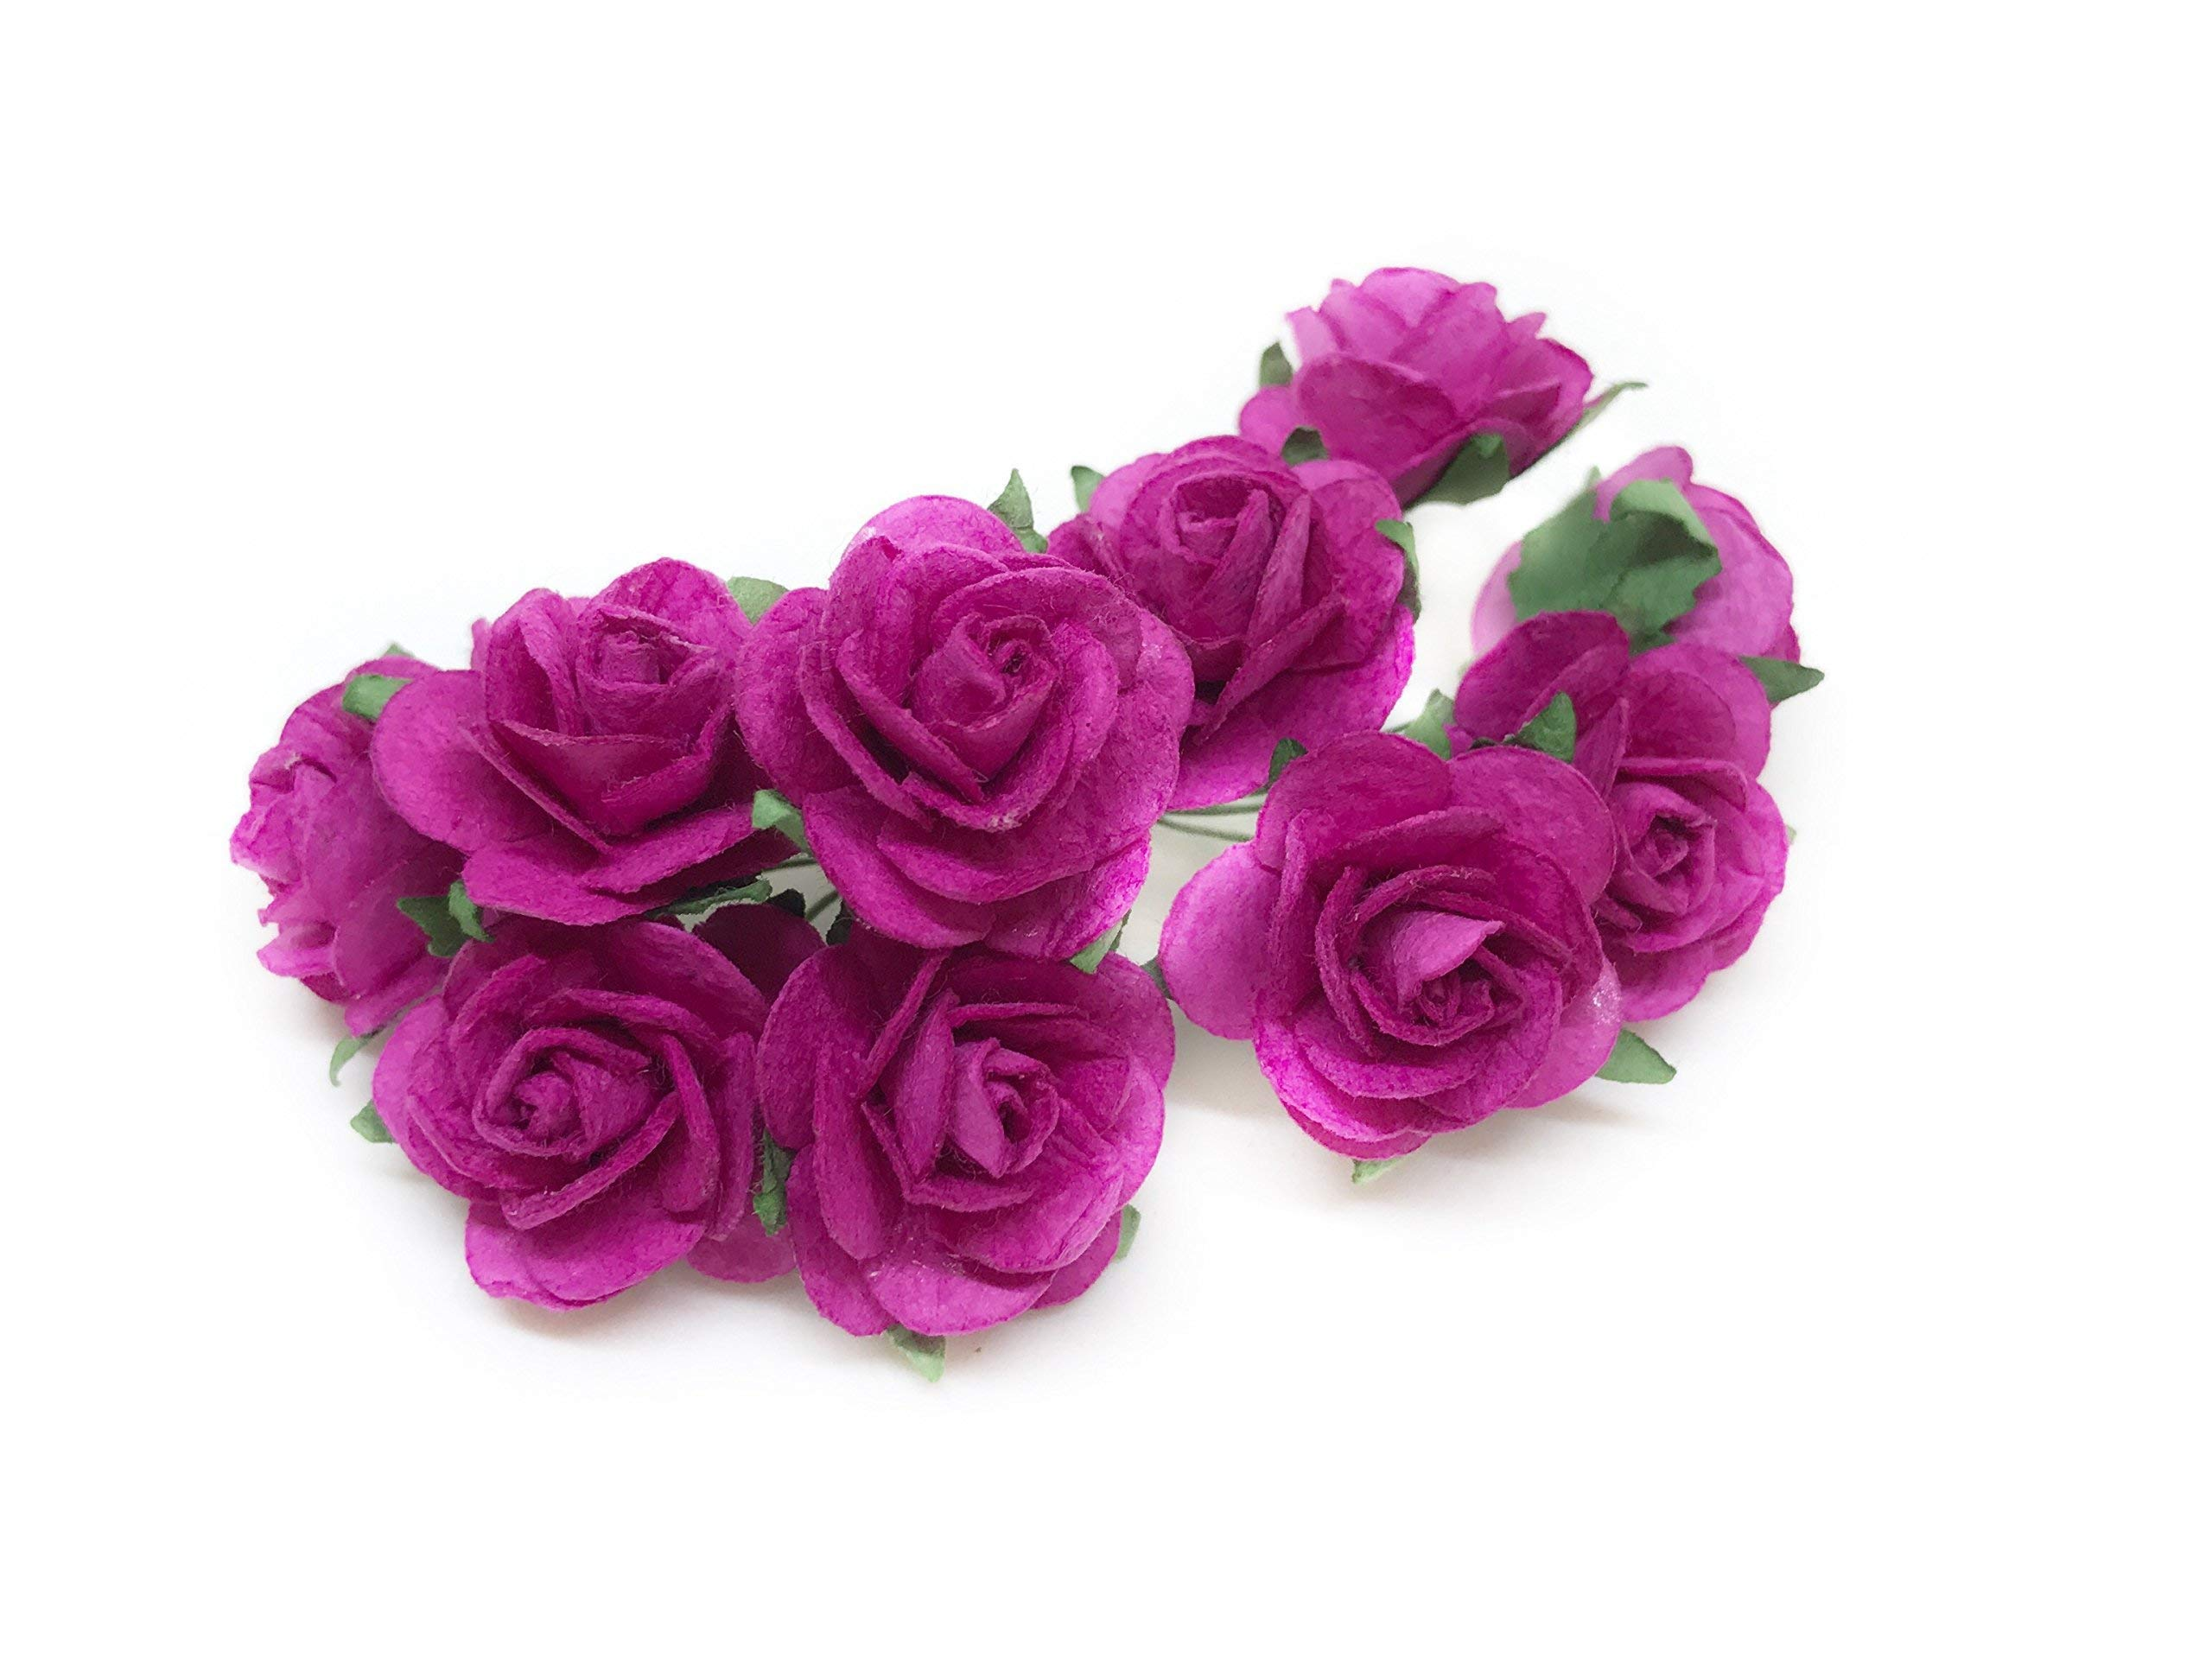 Savvi-Jewels-1-Fuchsia-Pink-Paper-Flowers-Paper-Rose-Artificial-Flowers-Fake-Flowers-Artificial-Roses-Paper-Craft-Flowers-Paper-Rose-Flower-Mulberry-Paper-Flowers-20-Pieces